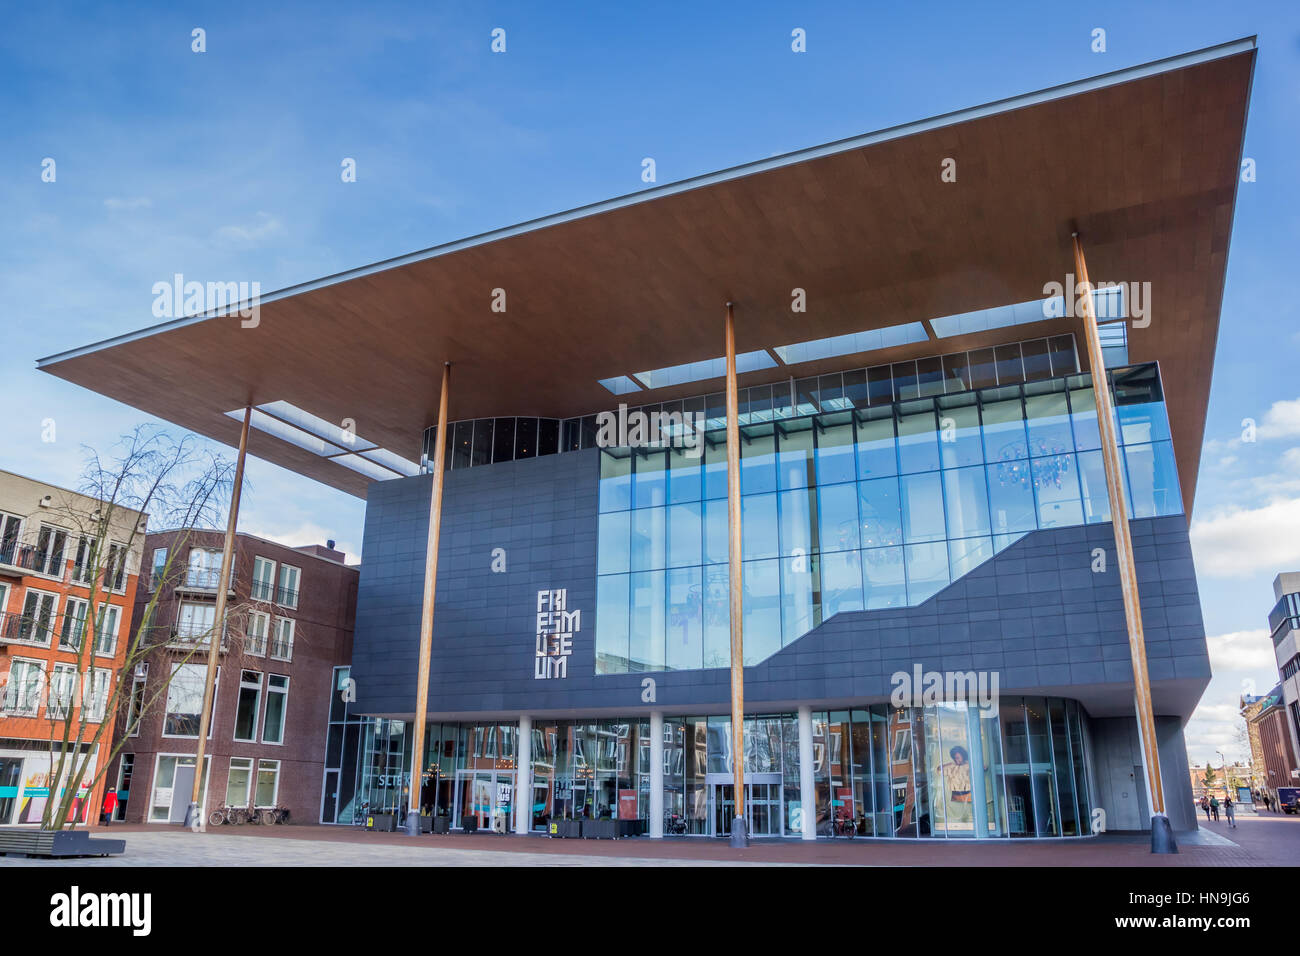 Fries Museum at the Zaailand in Leeuwarden, Netherlands - Stock Image